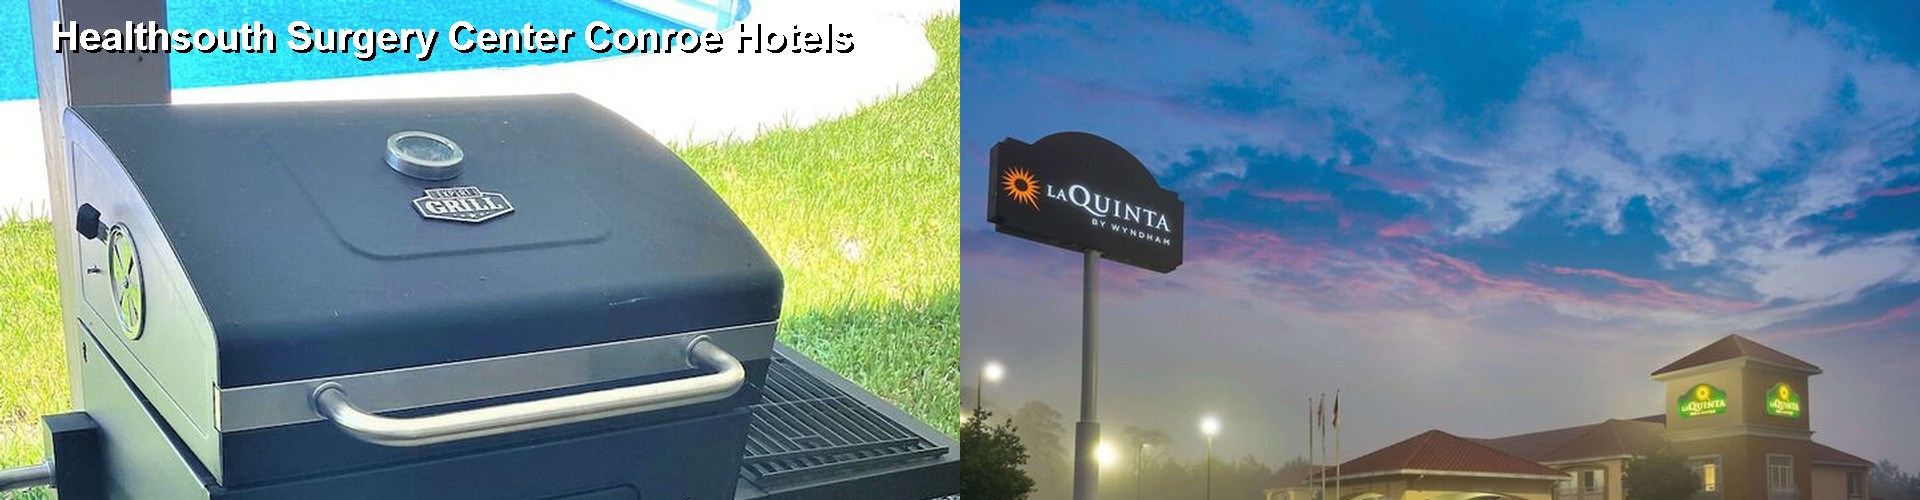 5 Best Hotels near Healthsouth Surgery Center Conroe